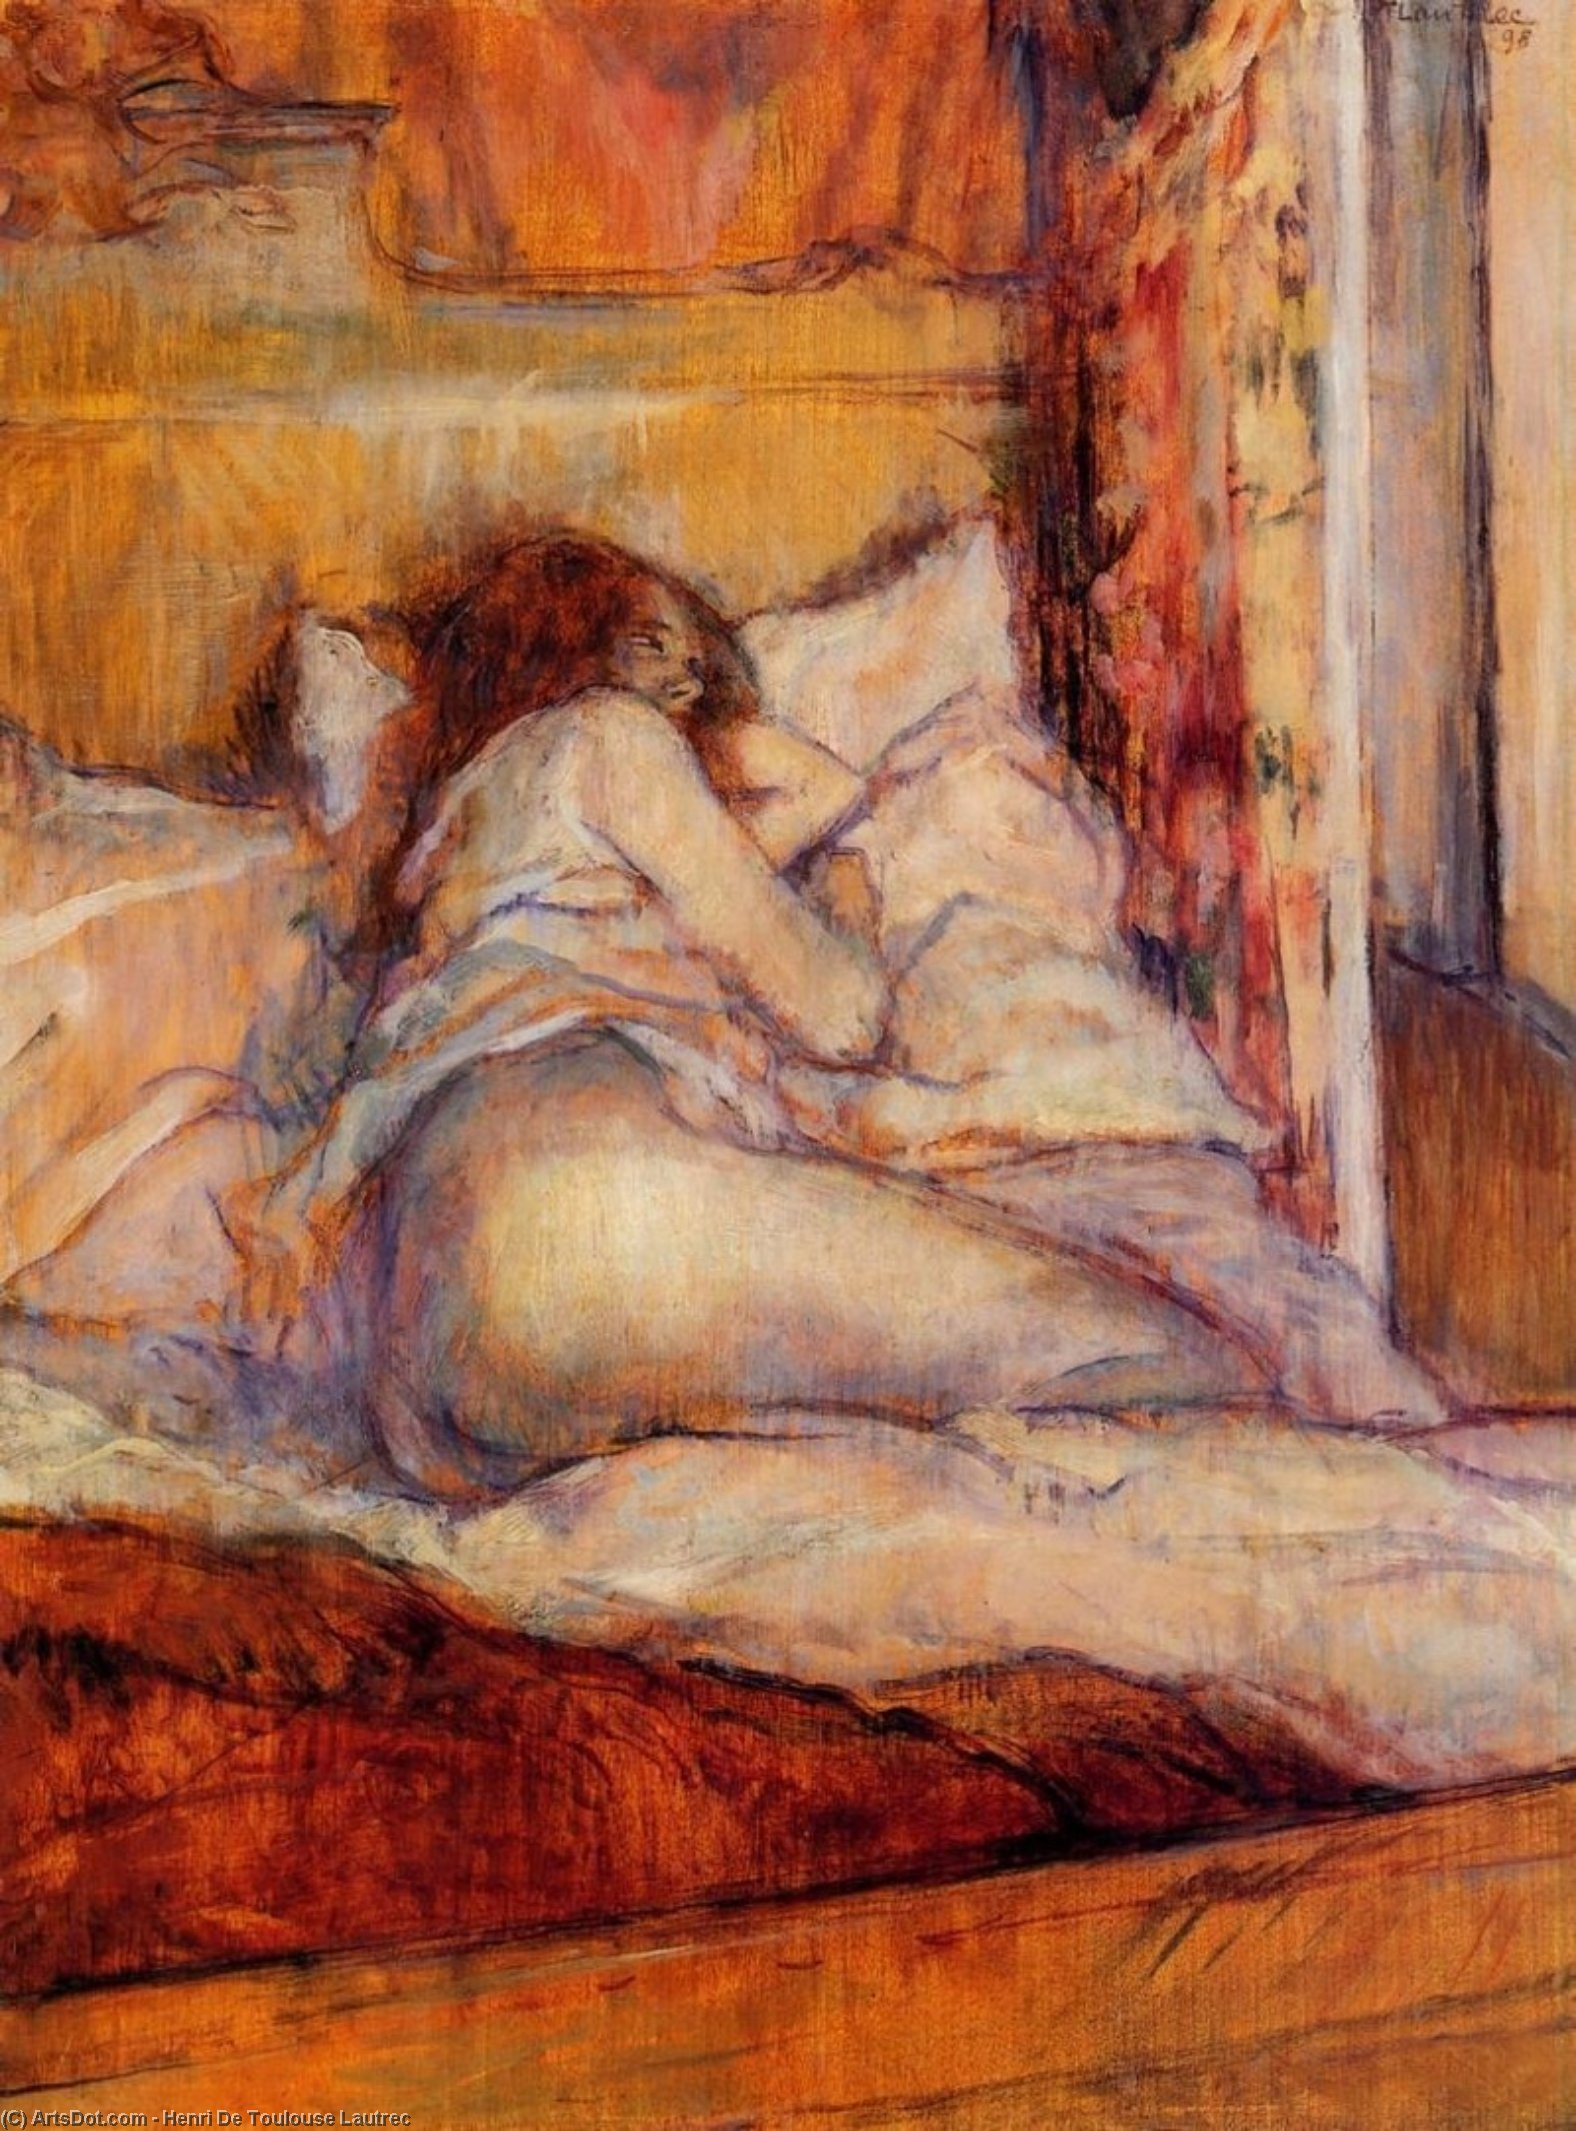 The Bed, Oil On Panel by Henri De Toulouse Lautrec (1864-1901, France)